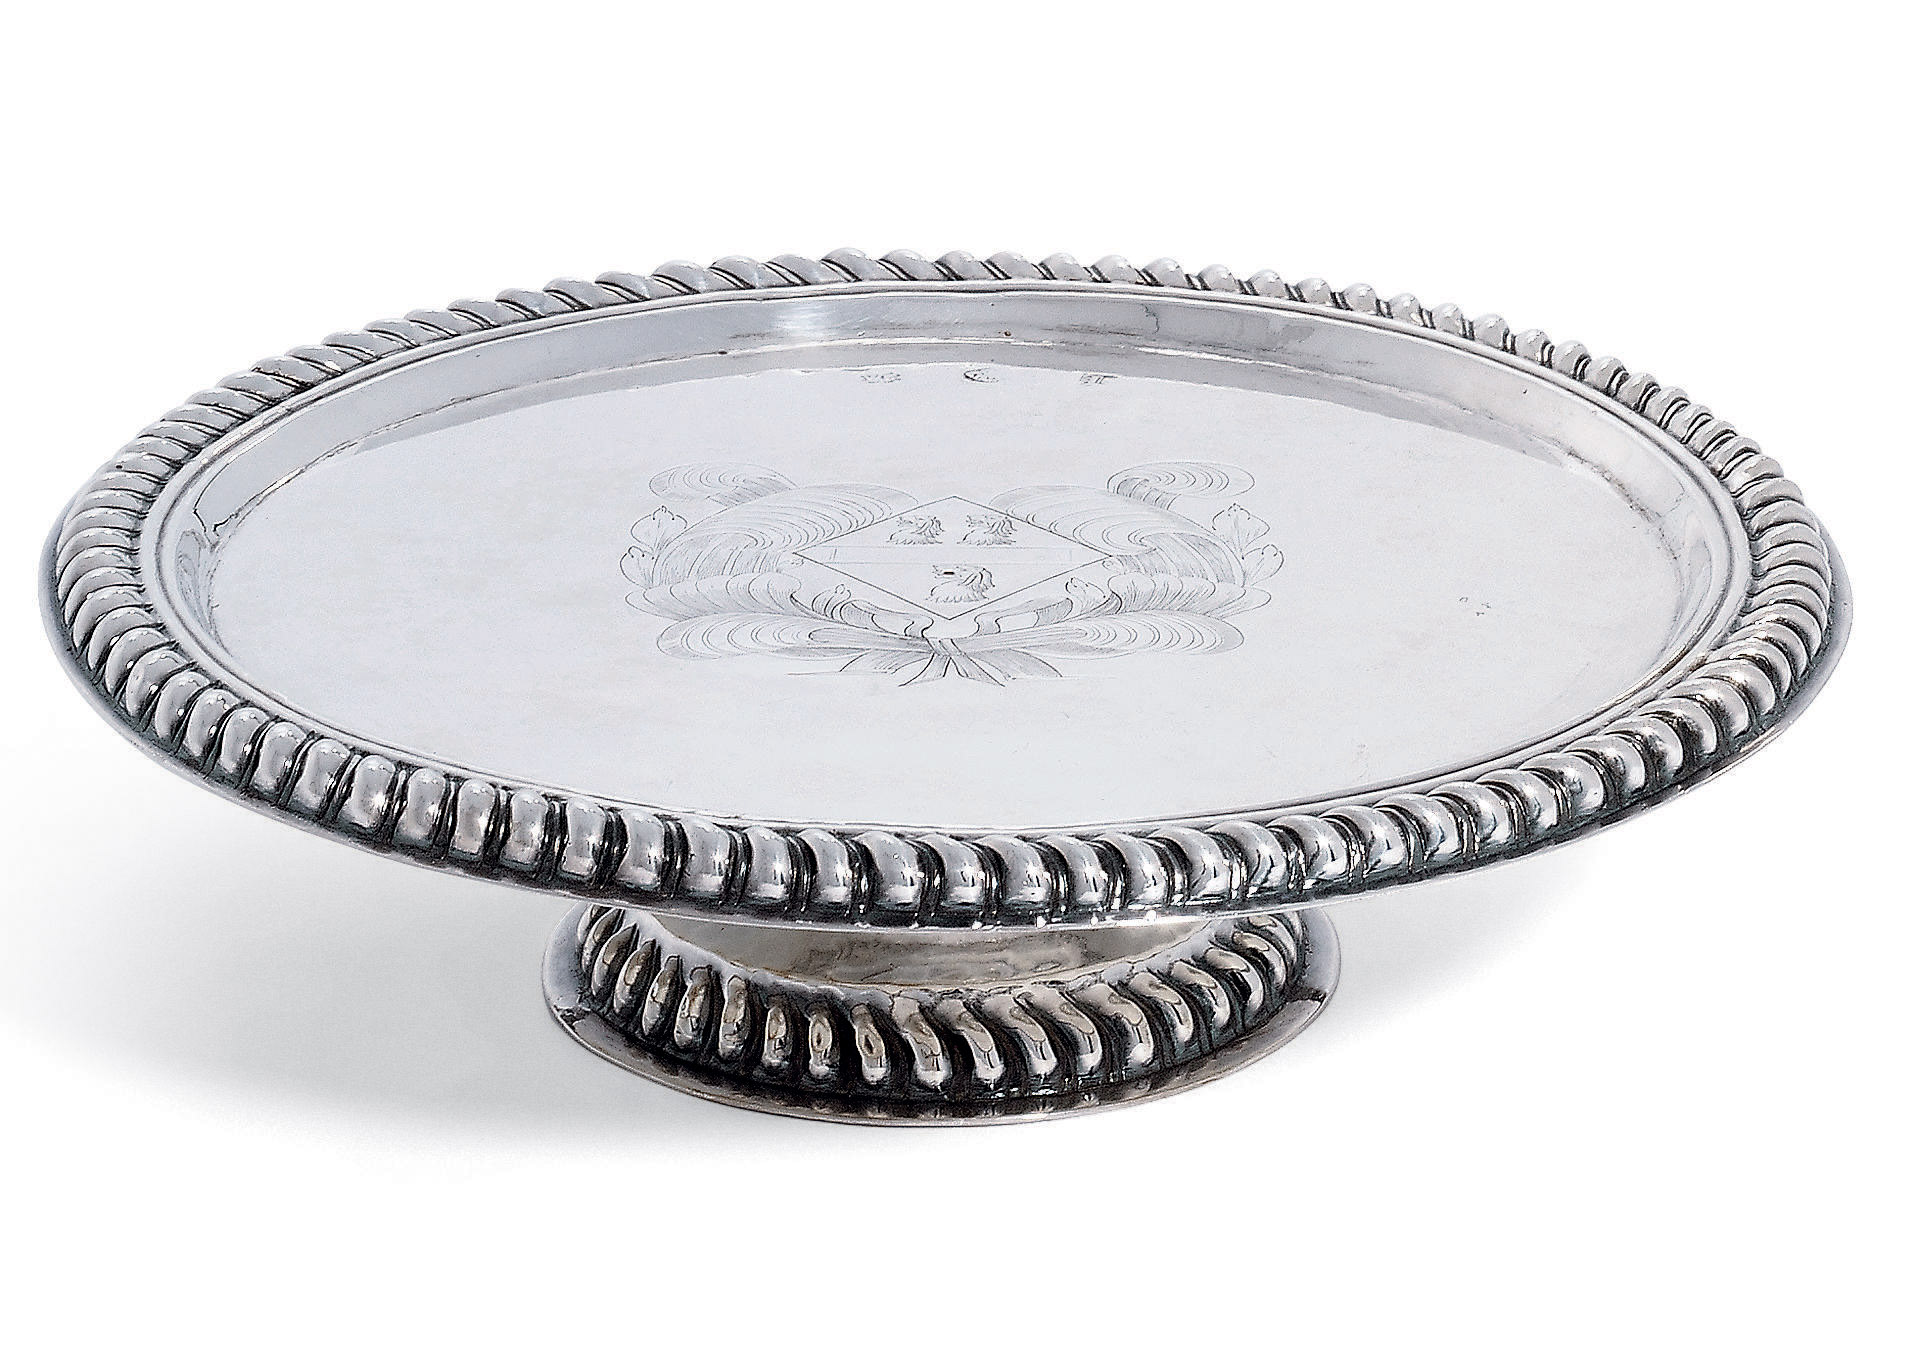 A WILLIAM AND MARY SILVER TAZZA